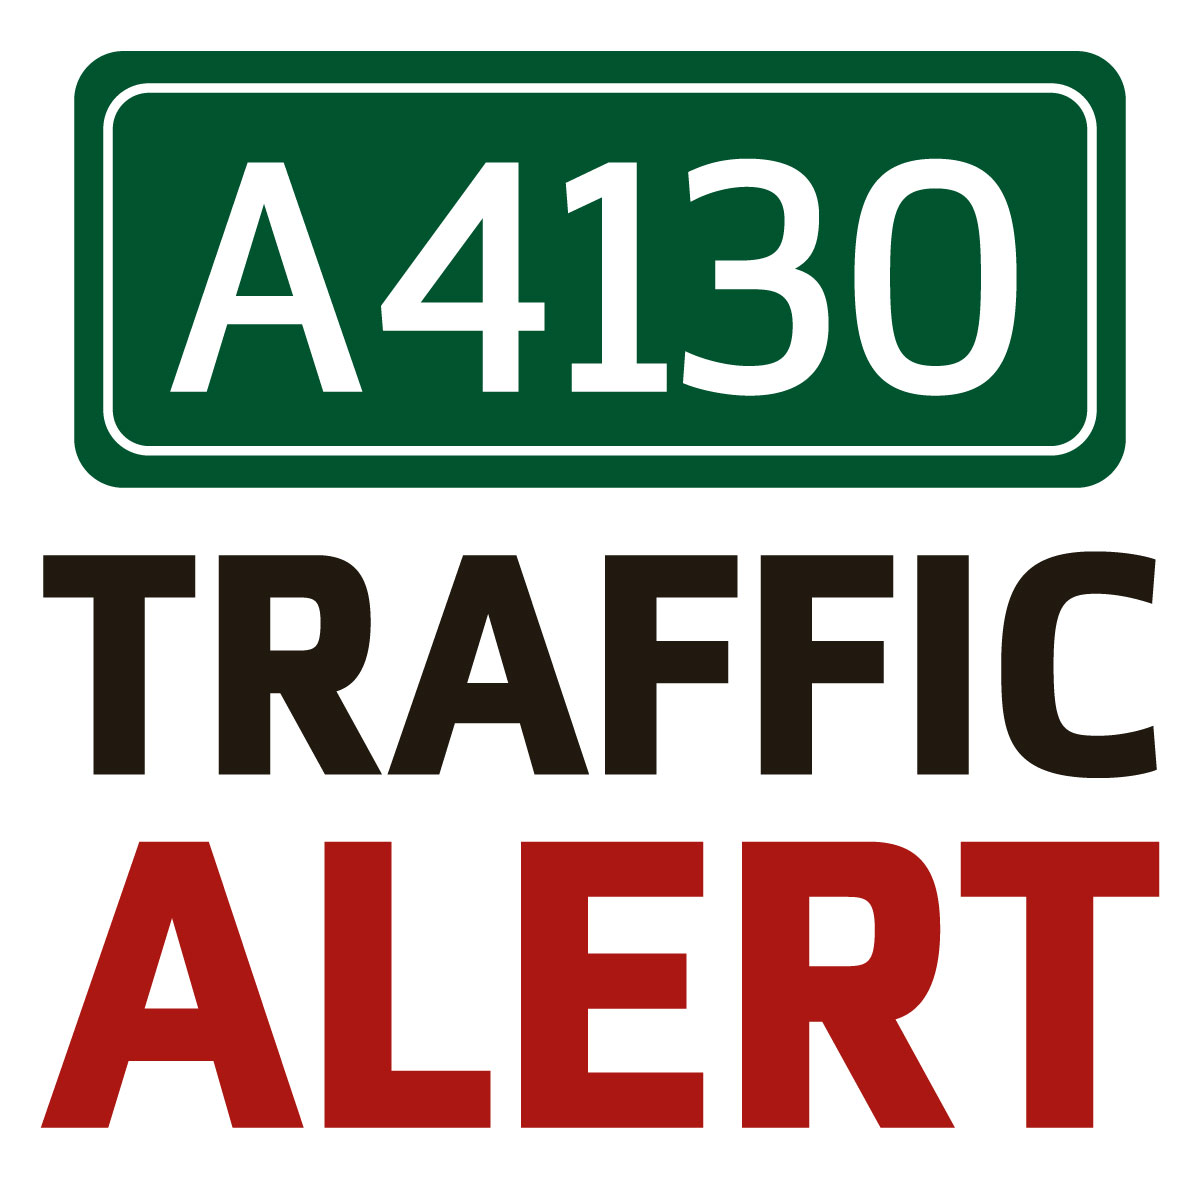 A4130 closed after accident